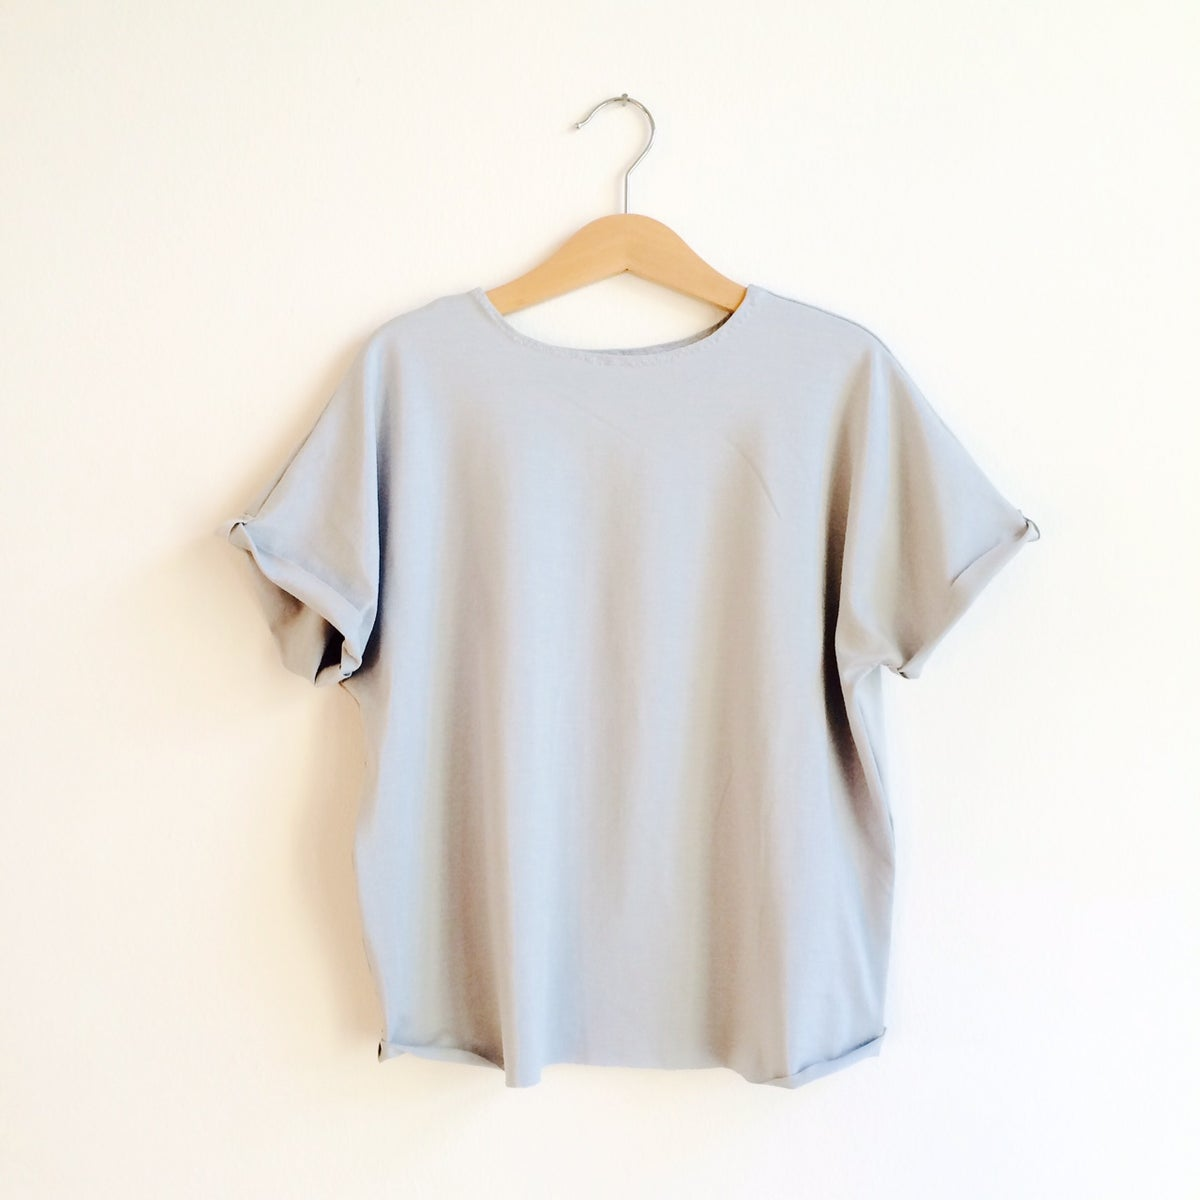 Easy Tee - grey, blue and pale blue